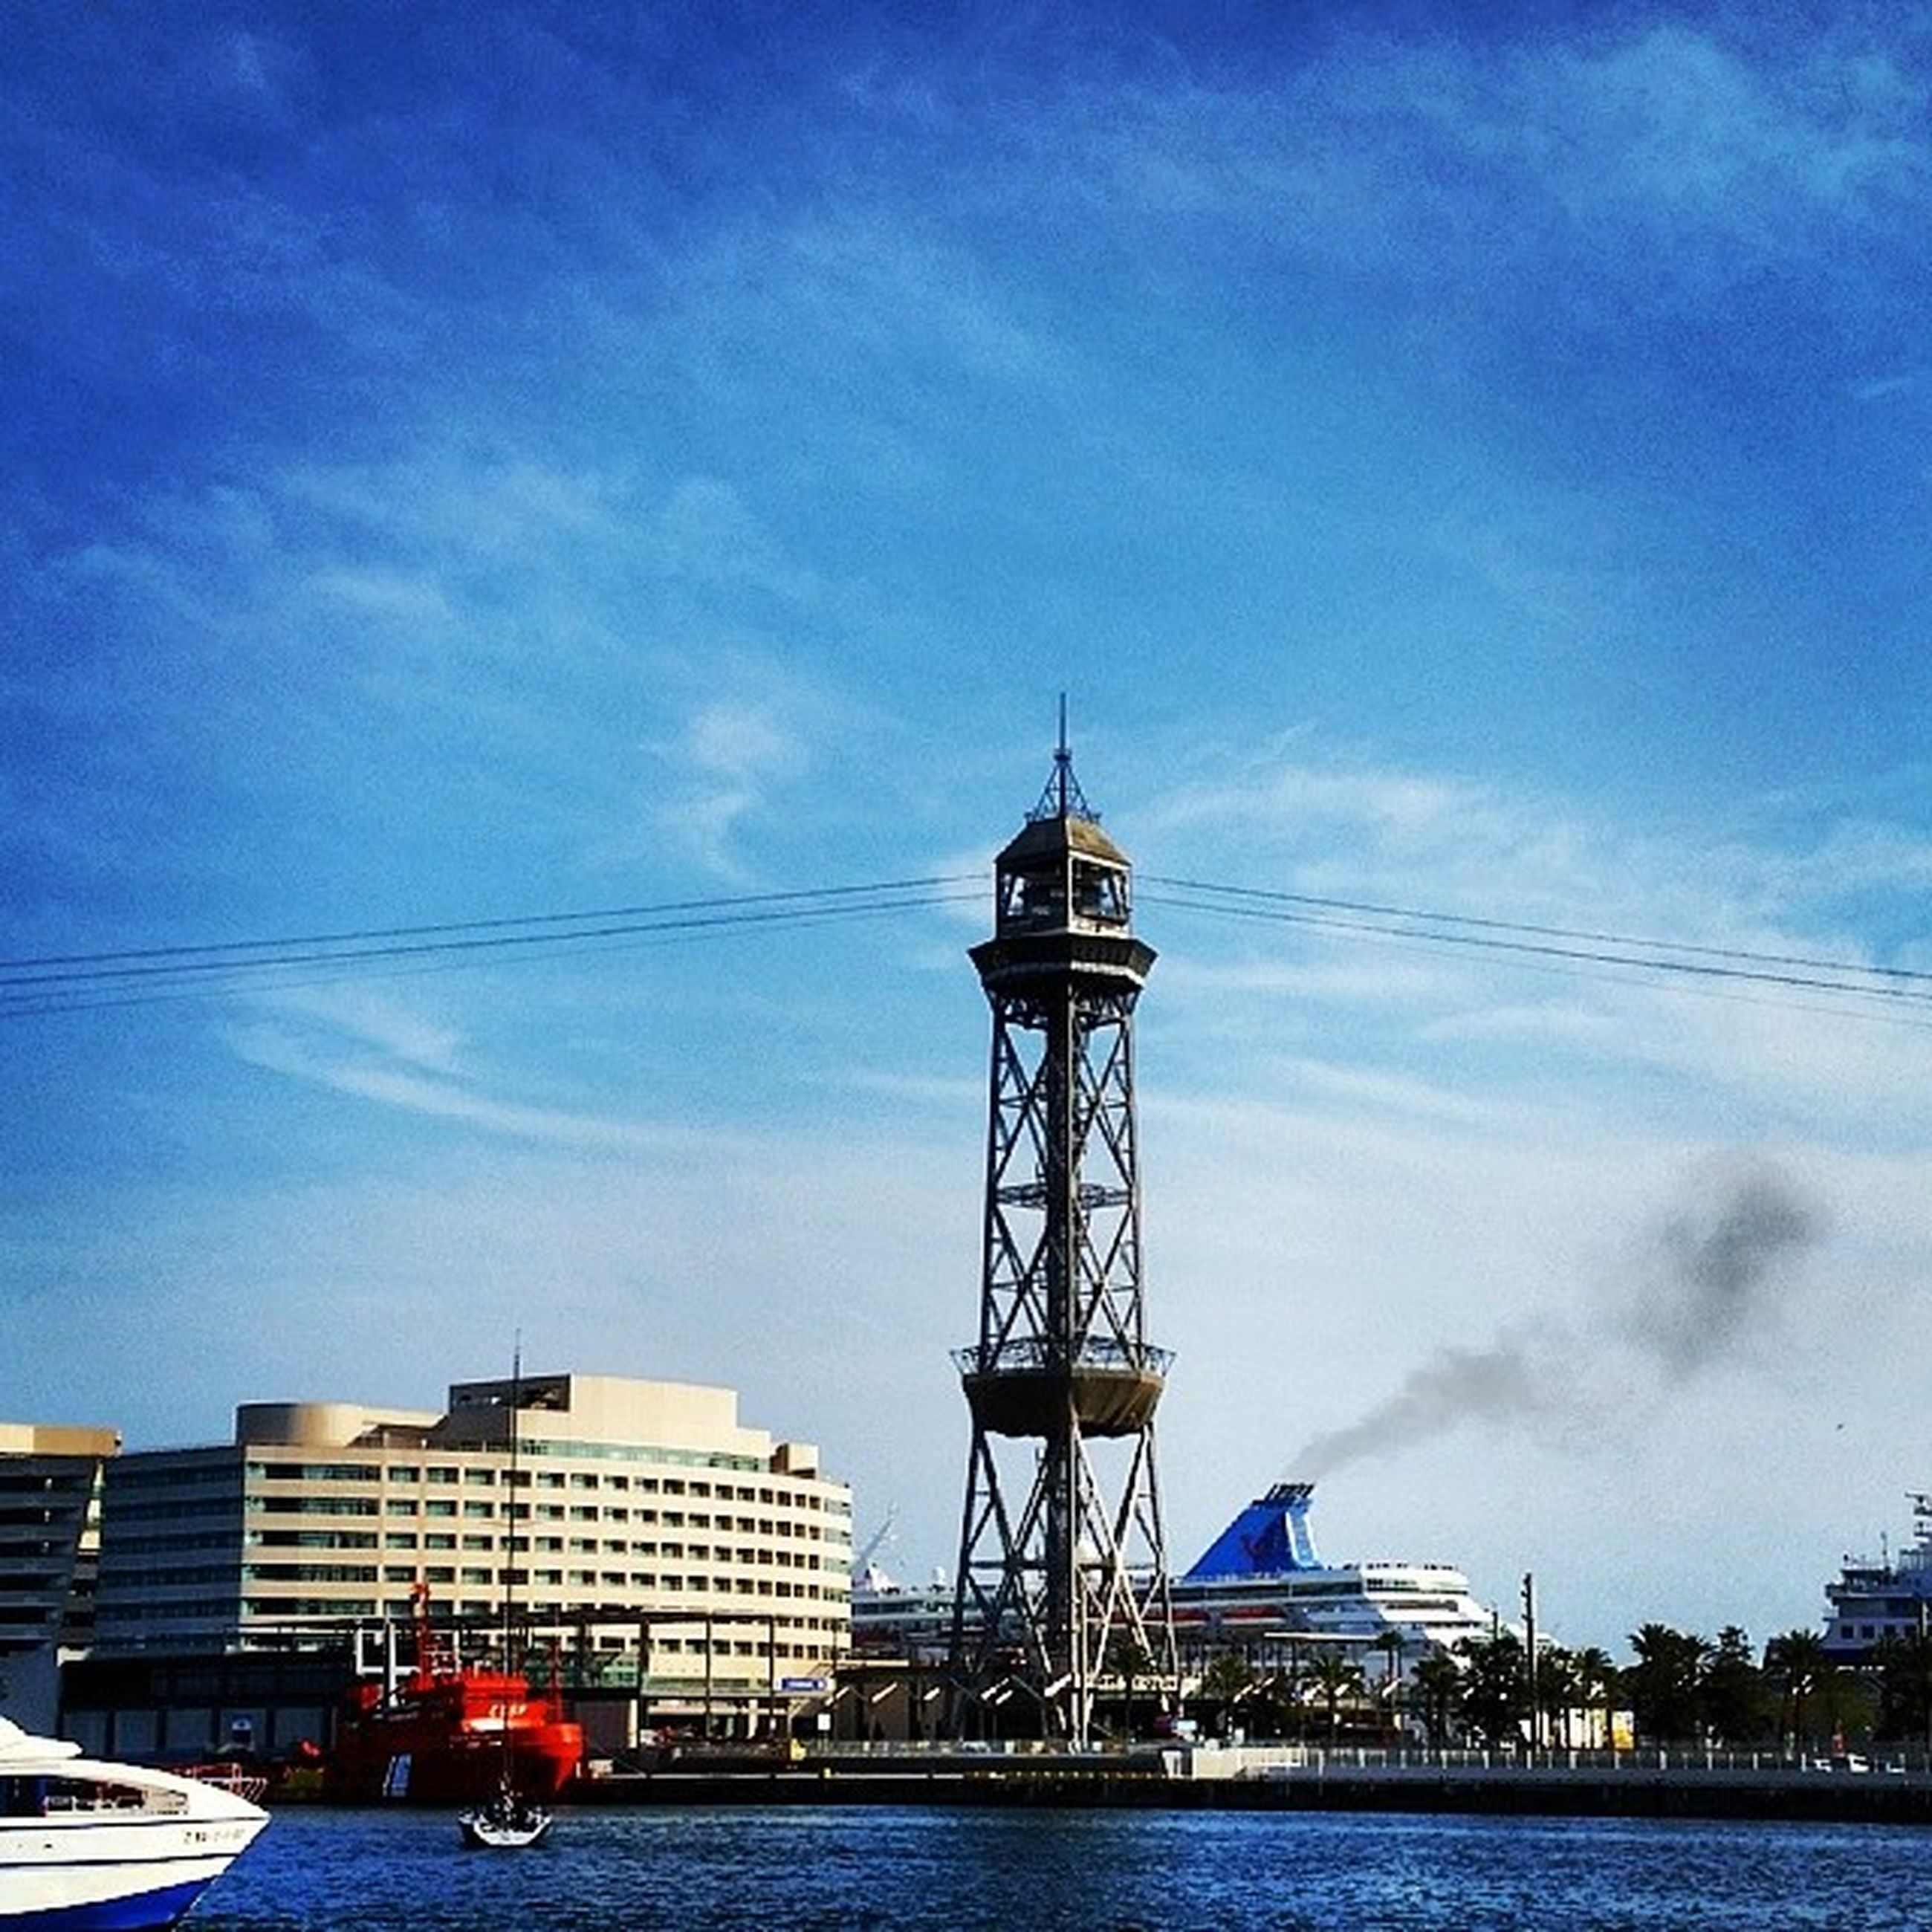 architecture, sky, built structure, building exterior, waterfront, water, cloud - sky, blue, low angle view, nautical vessel, cloud, tower, city, river, tall - high, outdoors, transportation, no people, day, sea